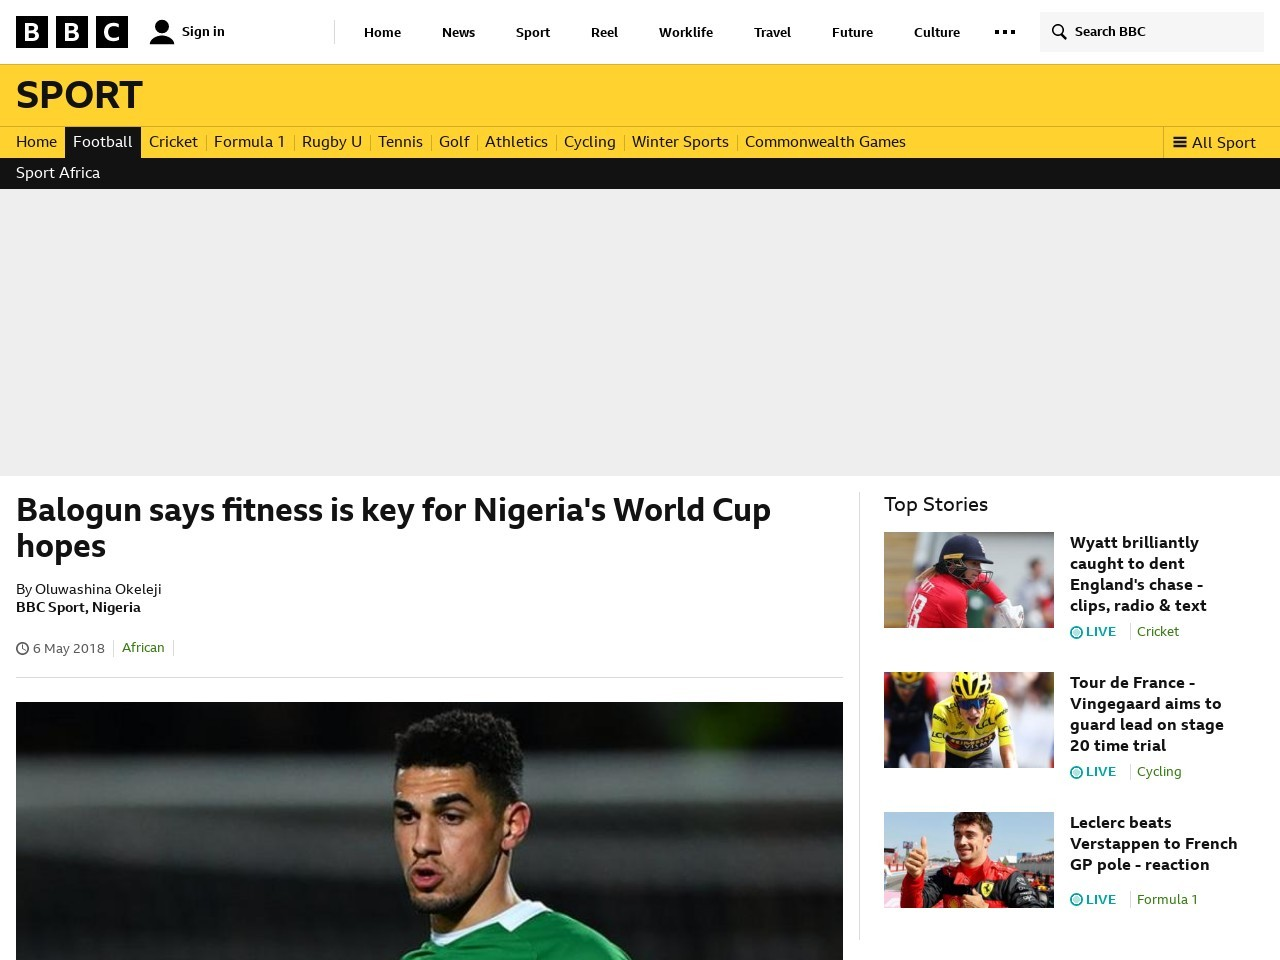 Balogun says fitness is key for Nigeria's World Cup hopes